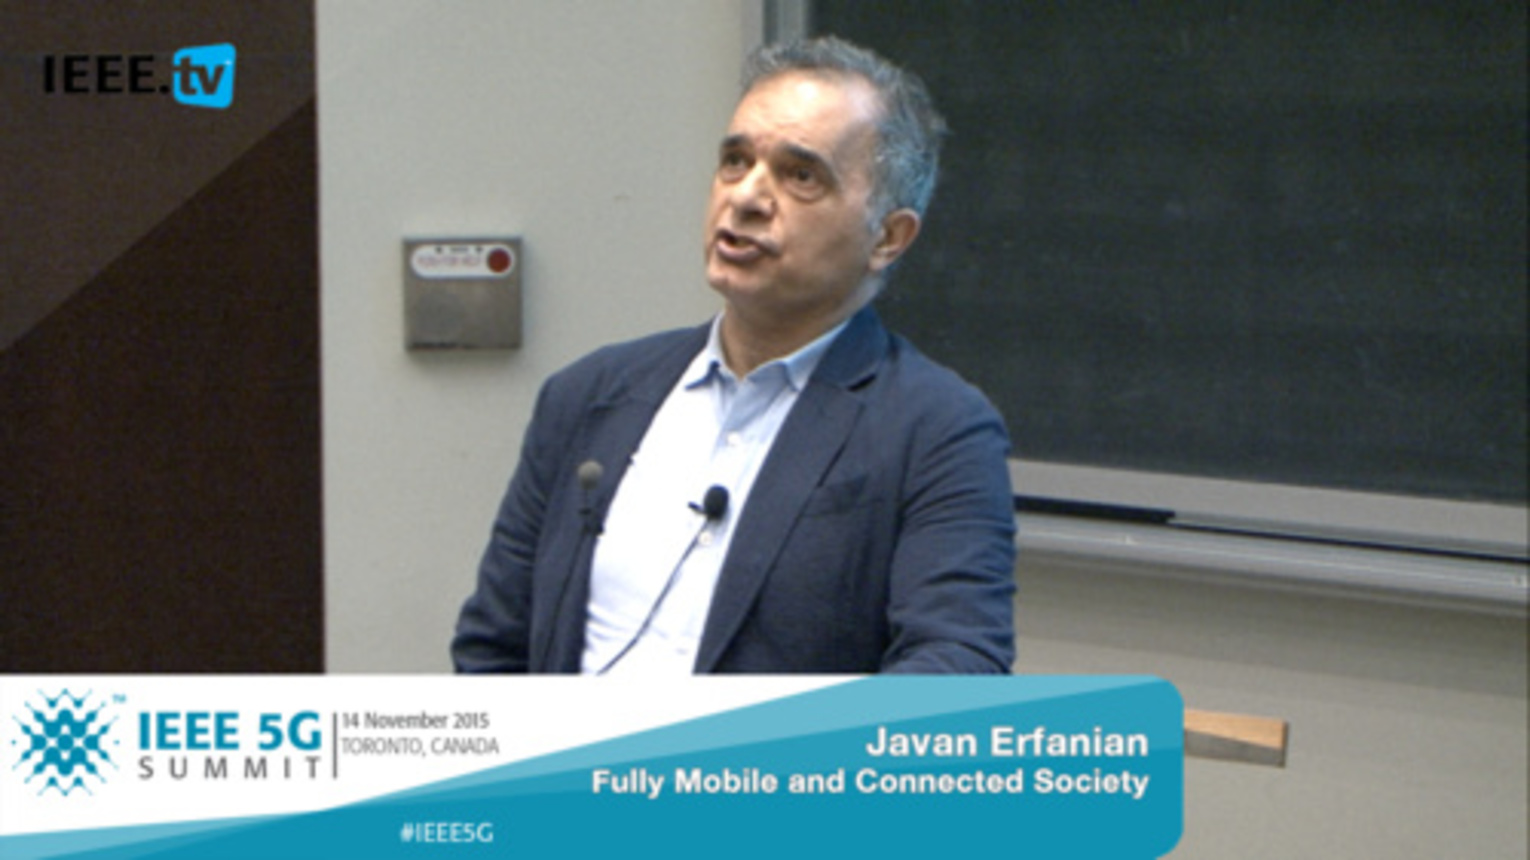 Toronto 5G Summit - 2015 - Javan Erfanian - Fully Mobile and Connected Society